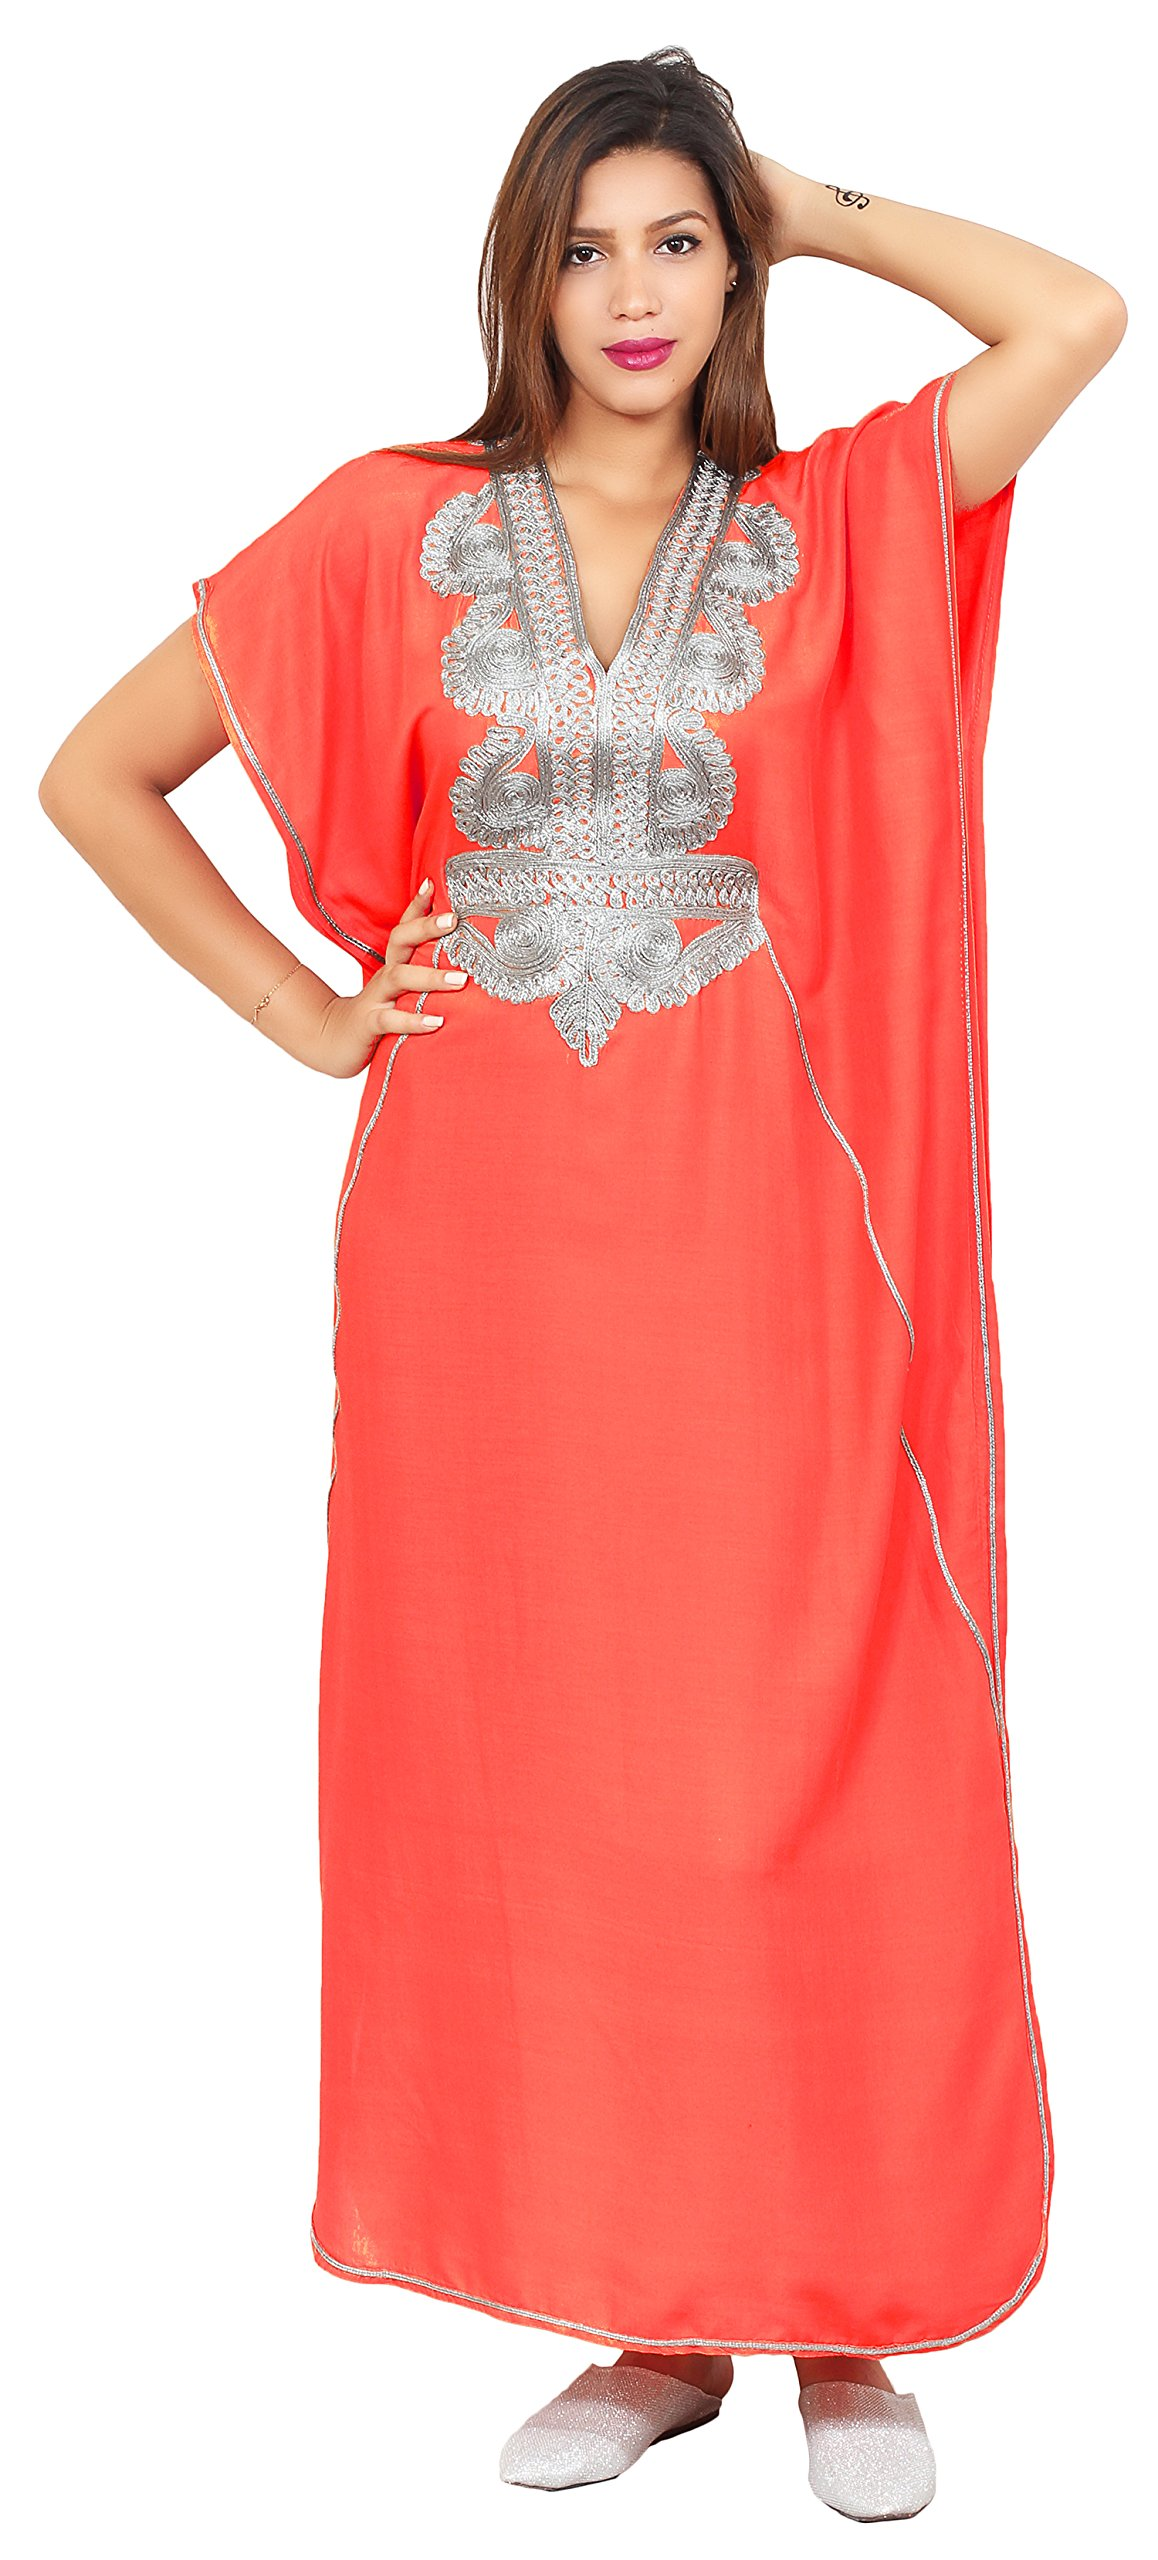 Moroccan Caftan Handmade Cotton Silver Hand Embroidery Breathable Soft salmon